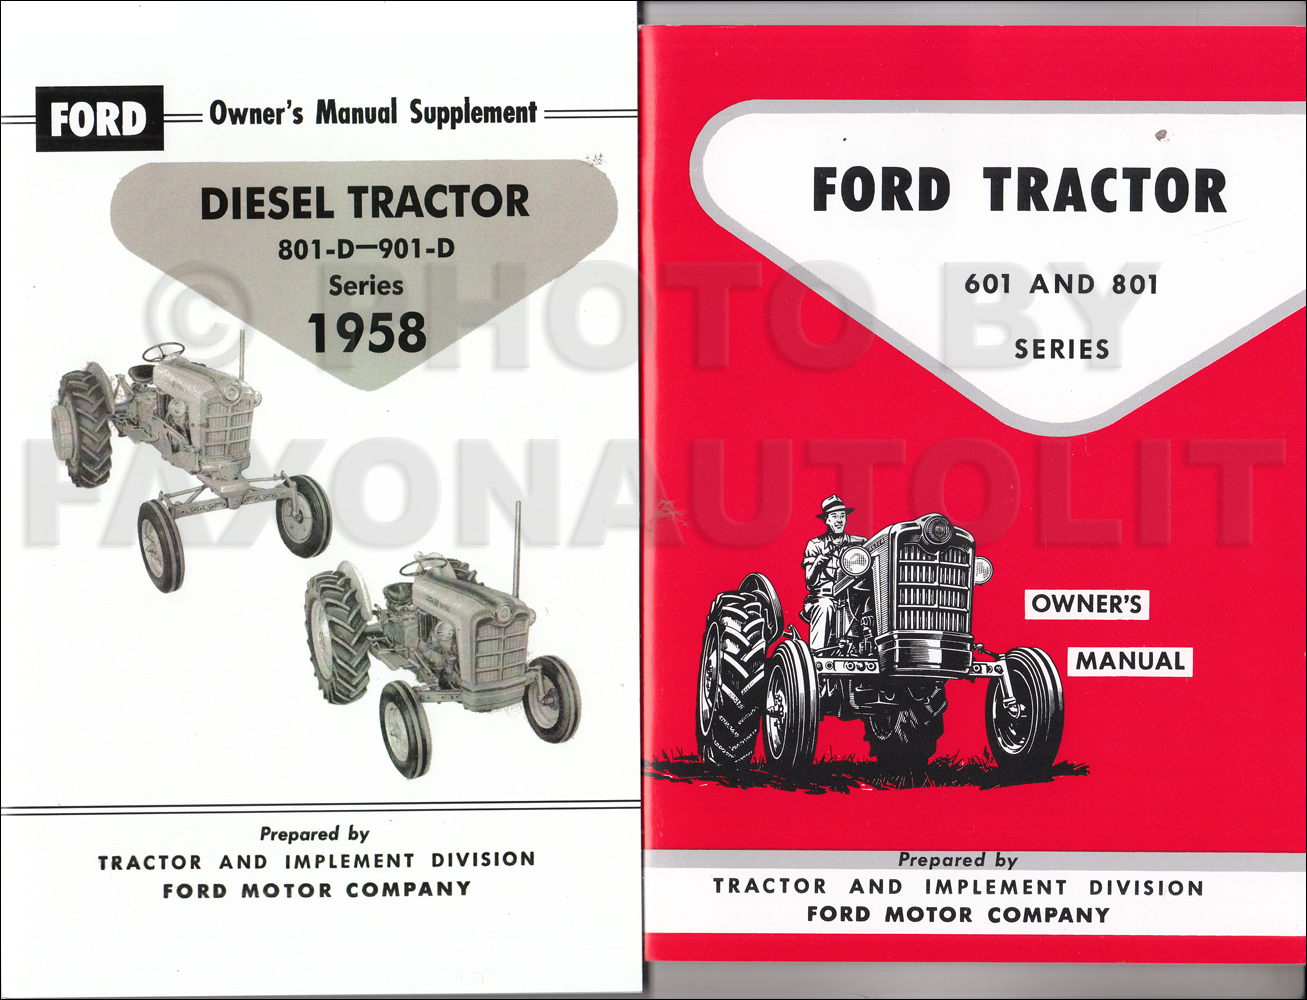 1958-1962 Ford 601-D & 801-D Series Tractor Diesel Owner's Manual